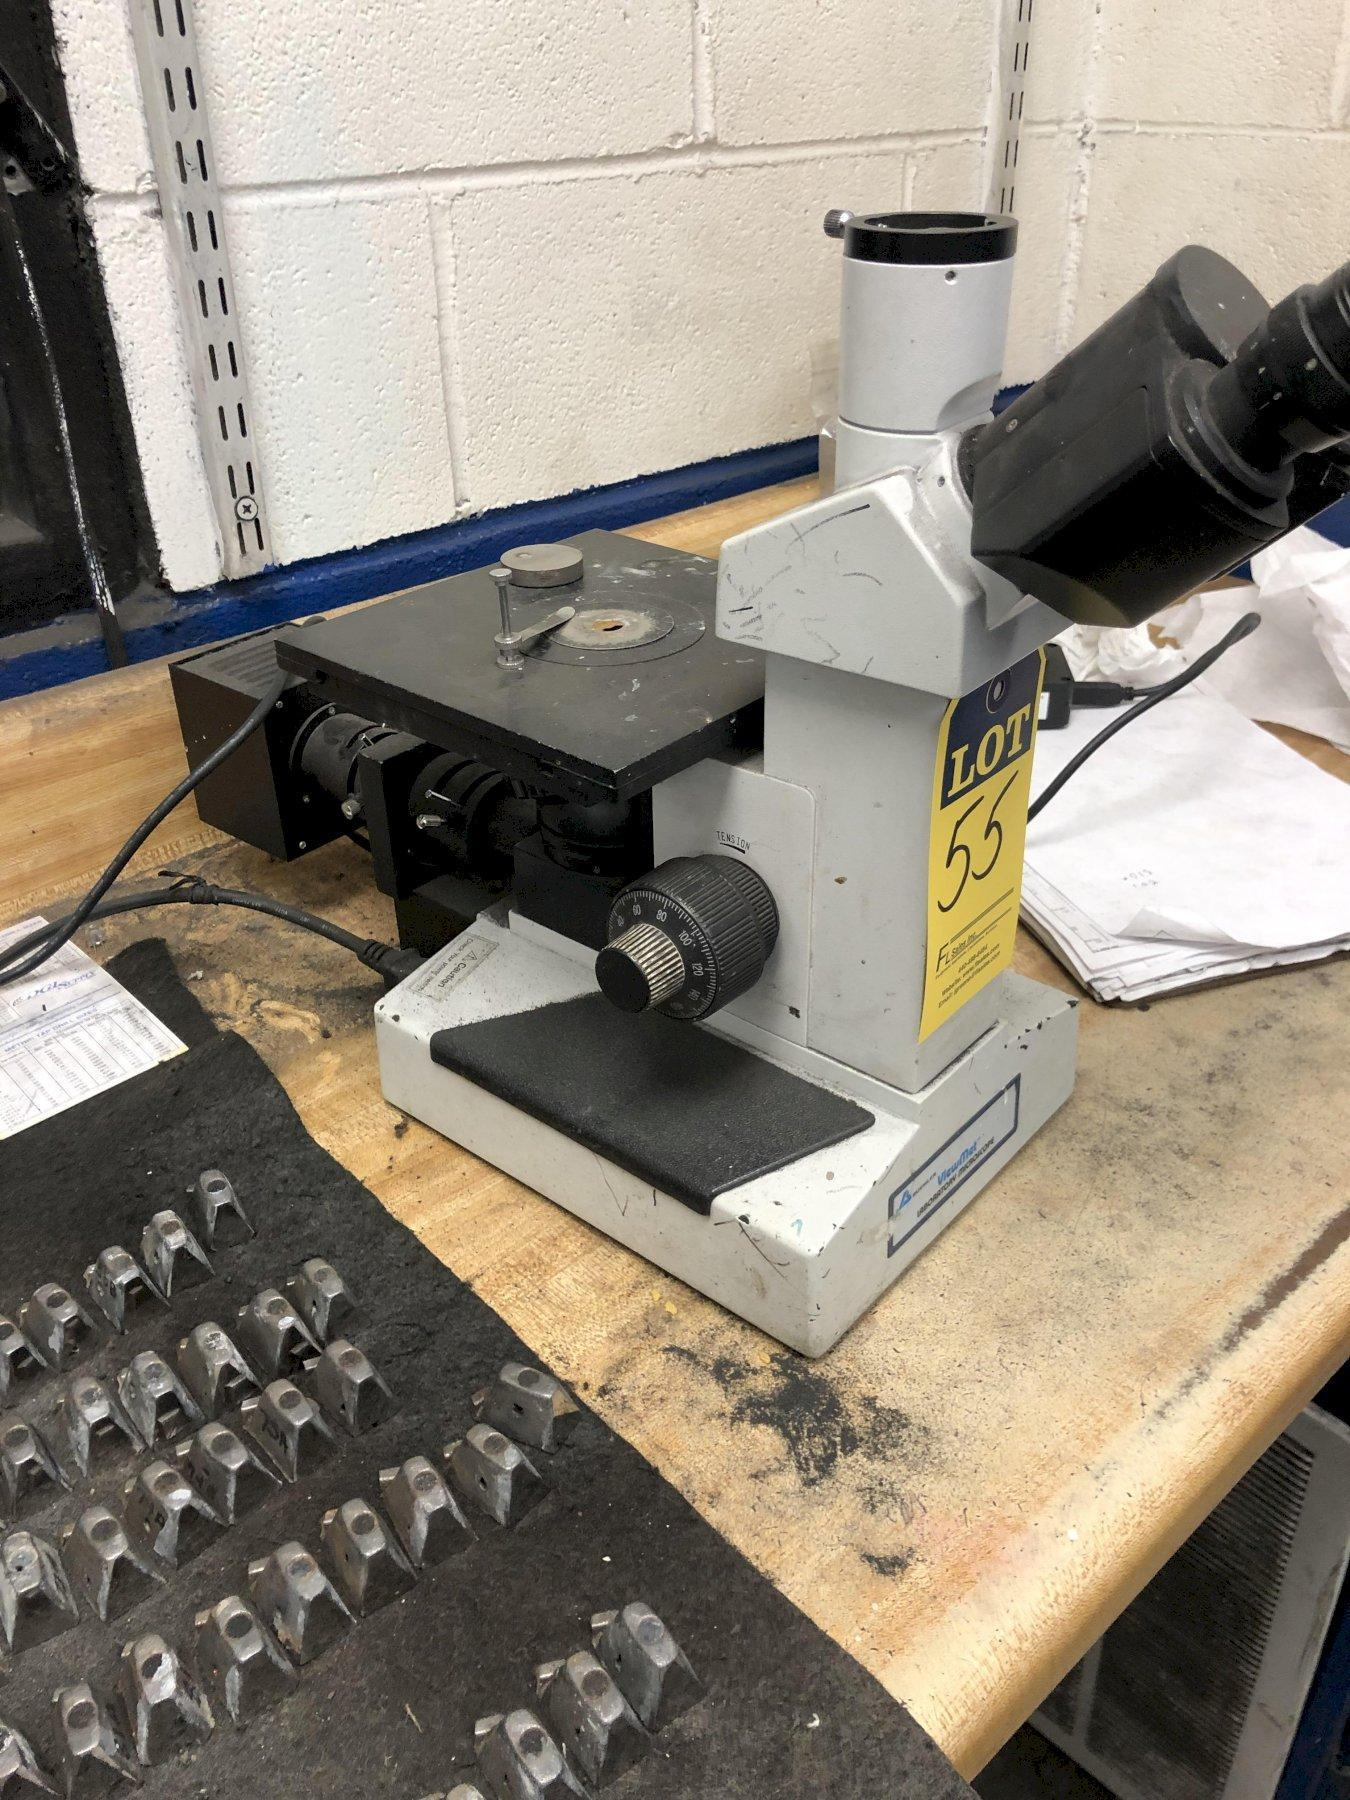 BUEHLER VIEWMET TOP MOUNTED MICROSCOPE WITH VIDEO AND LIGHT SOURCE